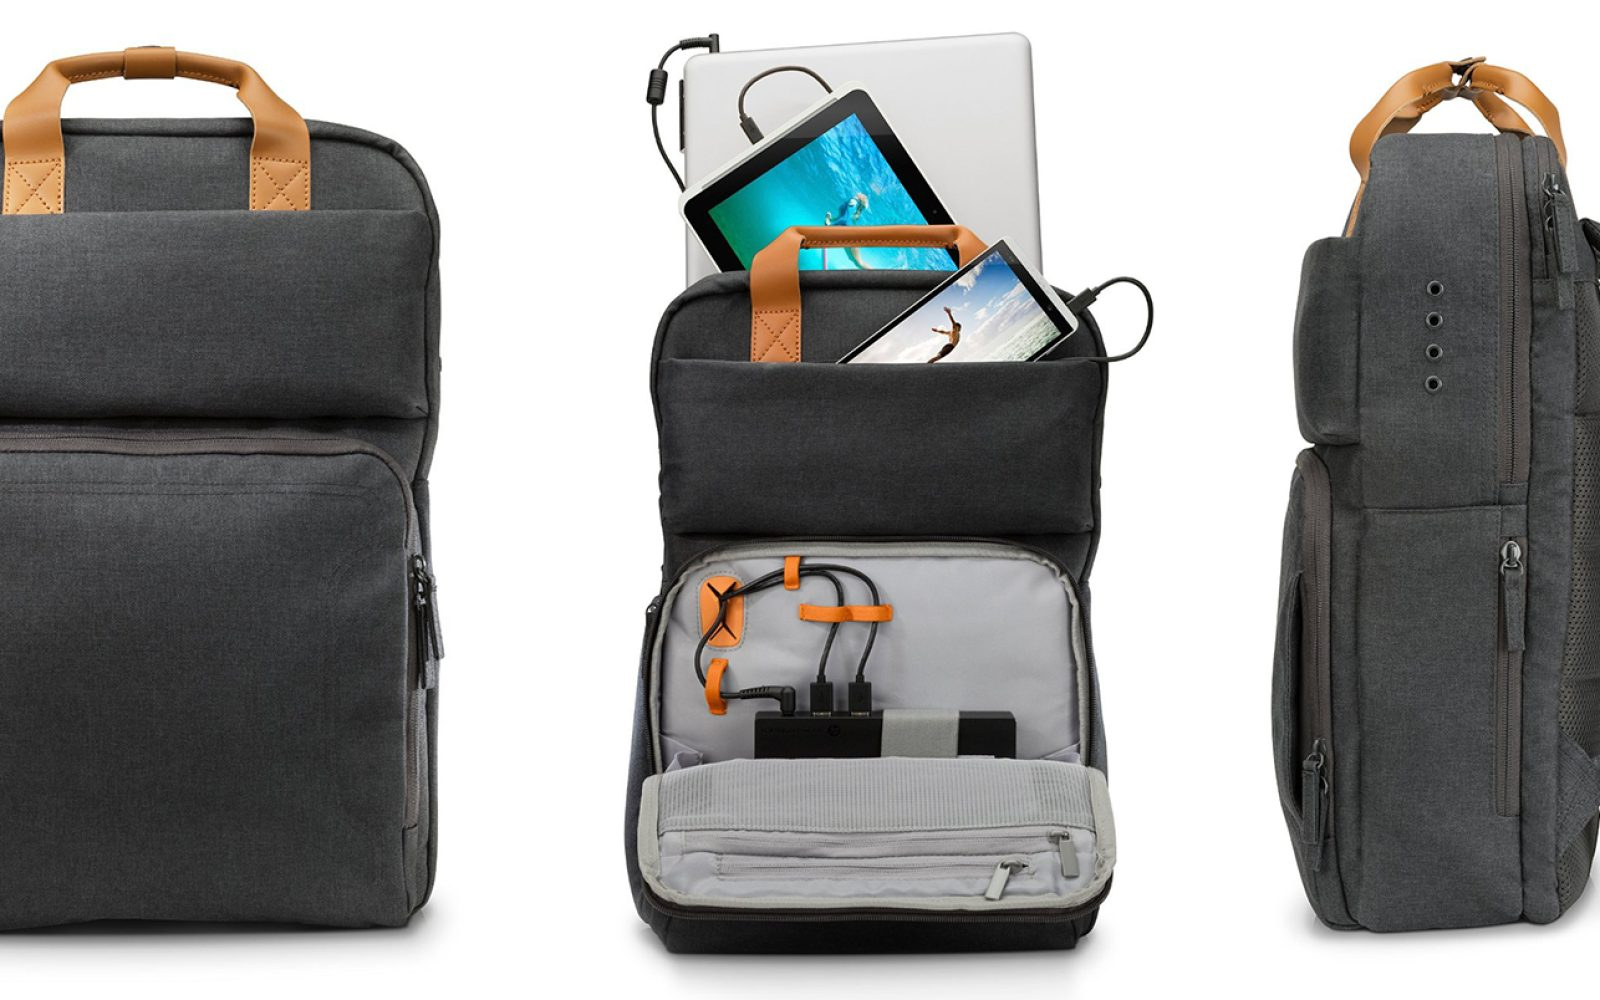 Hewlett Packard made a backpack with a massive built-in battery and it  actually looks pretty cool 0e79addba22bd